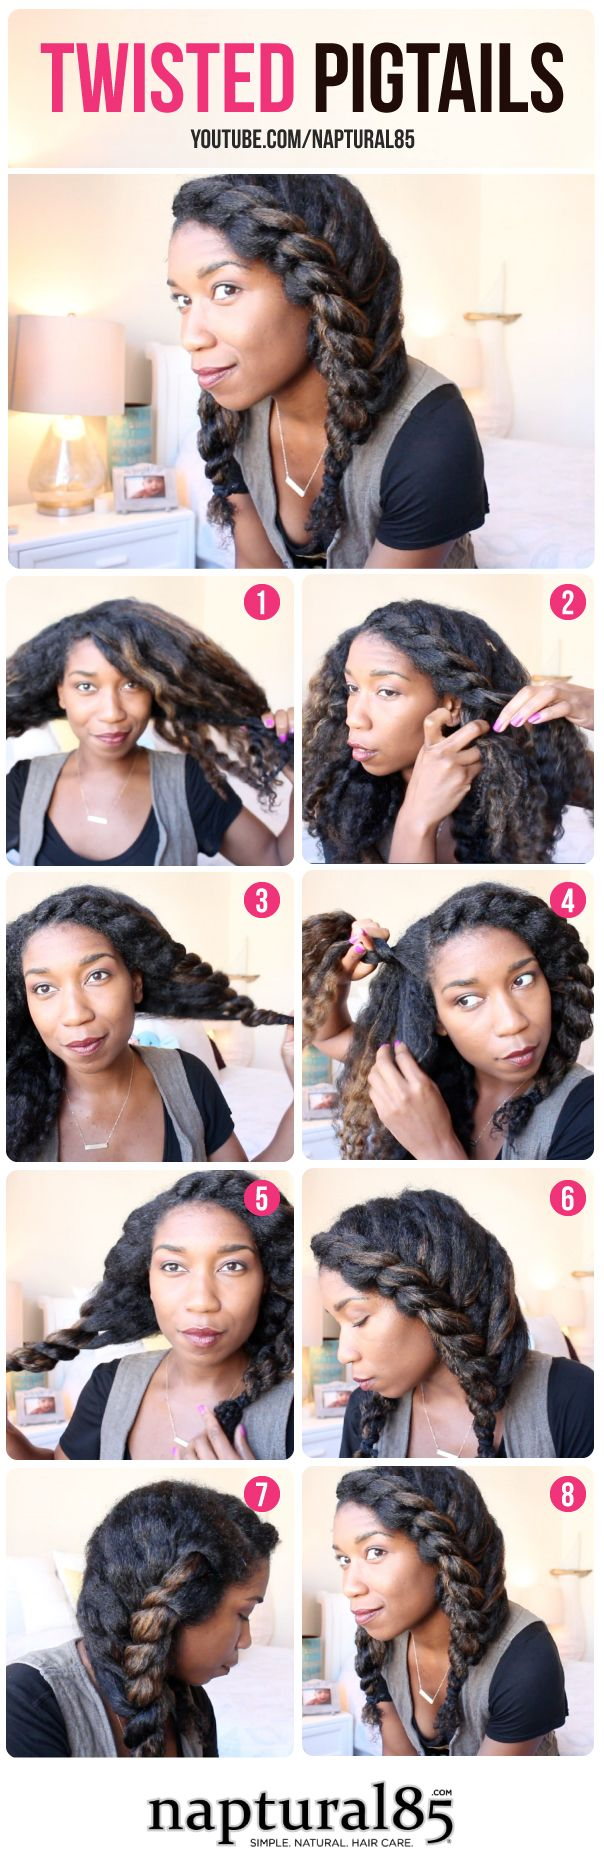 Natural Hairstyles By Naptural85 Twisted Pigtails Easy